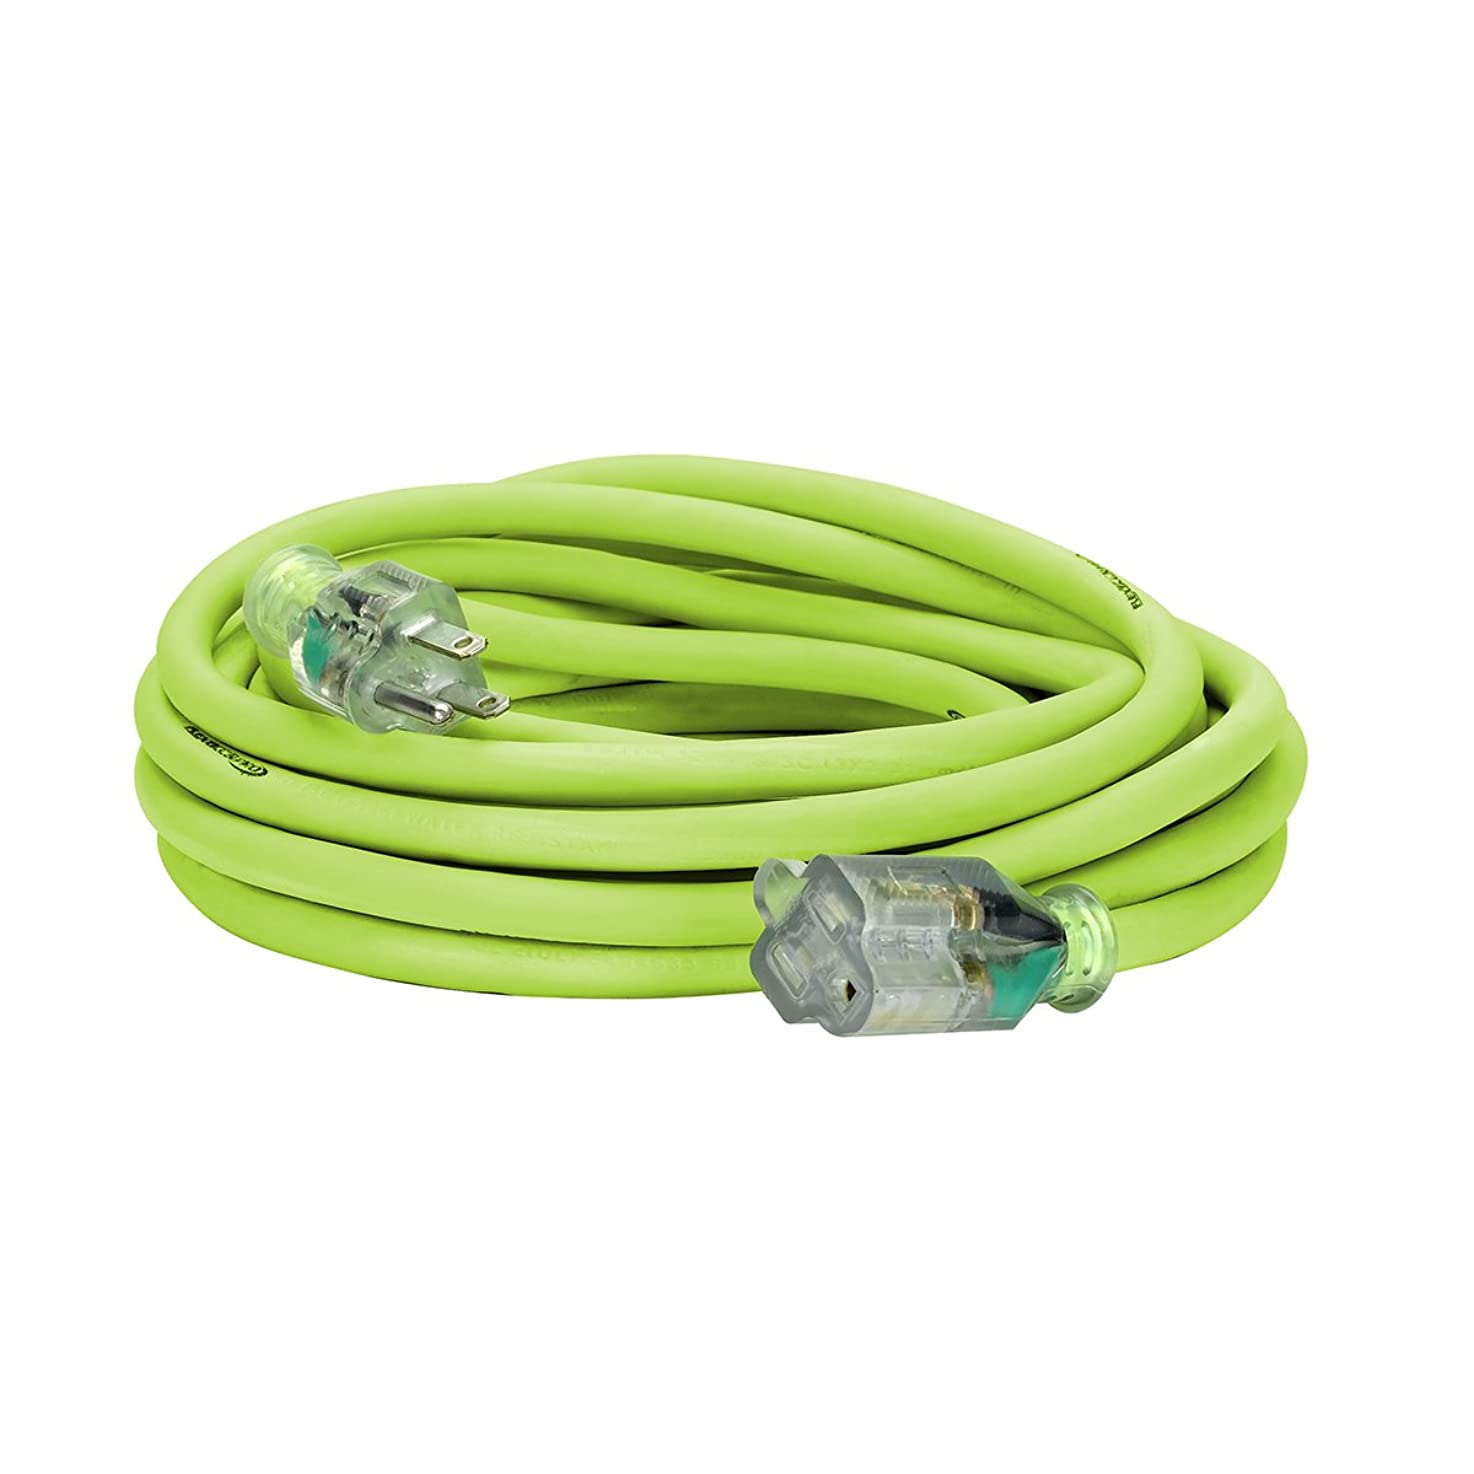 Flexzilla Pro Extension Cord, 12/3 AWG SJTW, 25 ft., Lighted Plug, Indoor/Outdoor, ZillaGreen - FZ512825